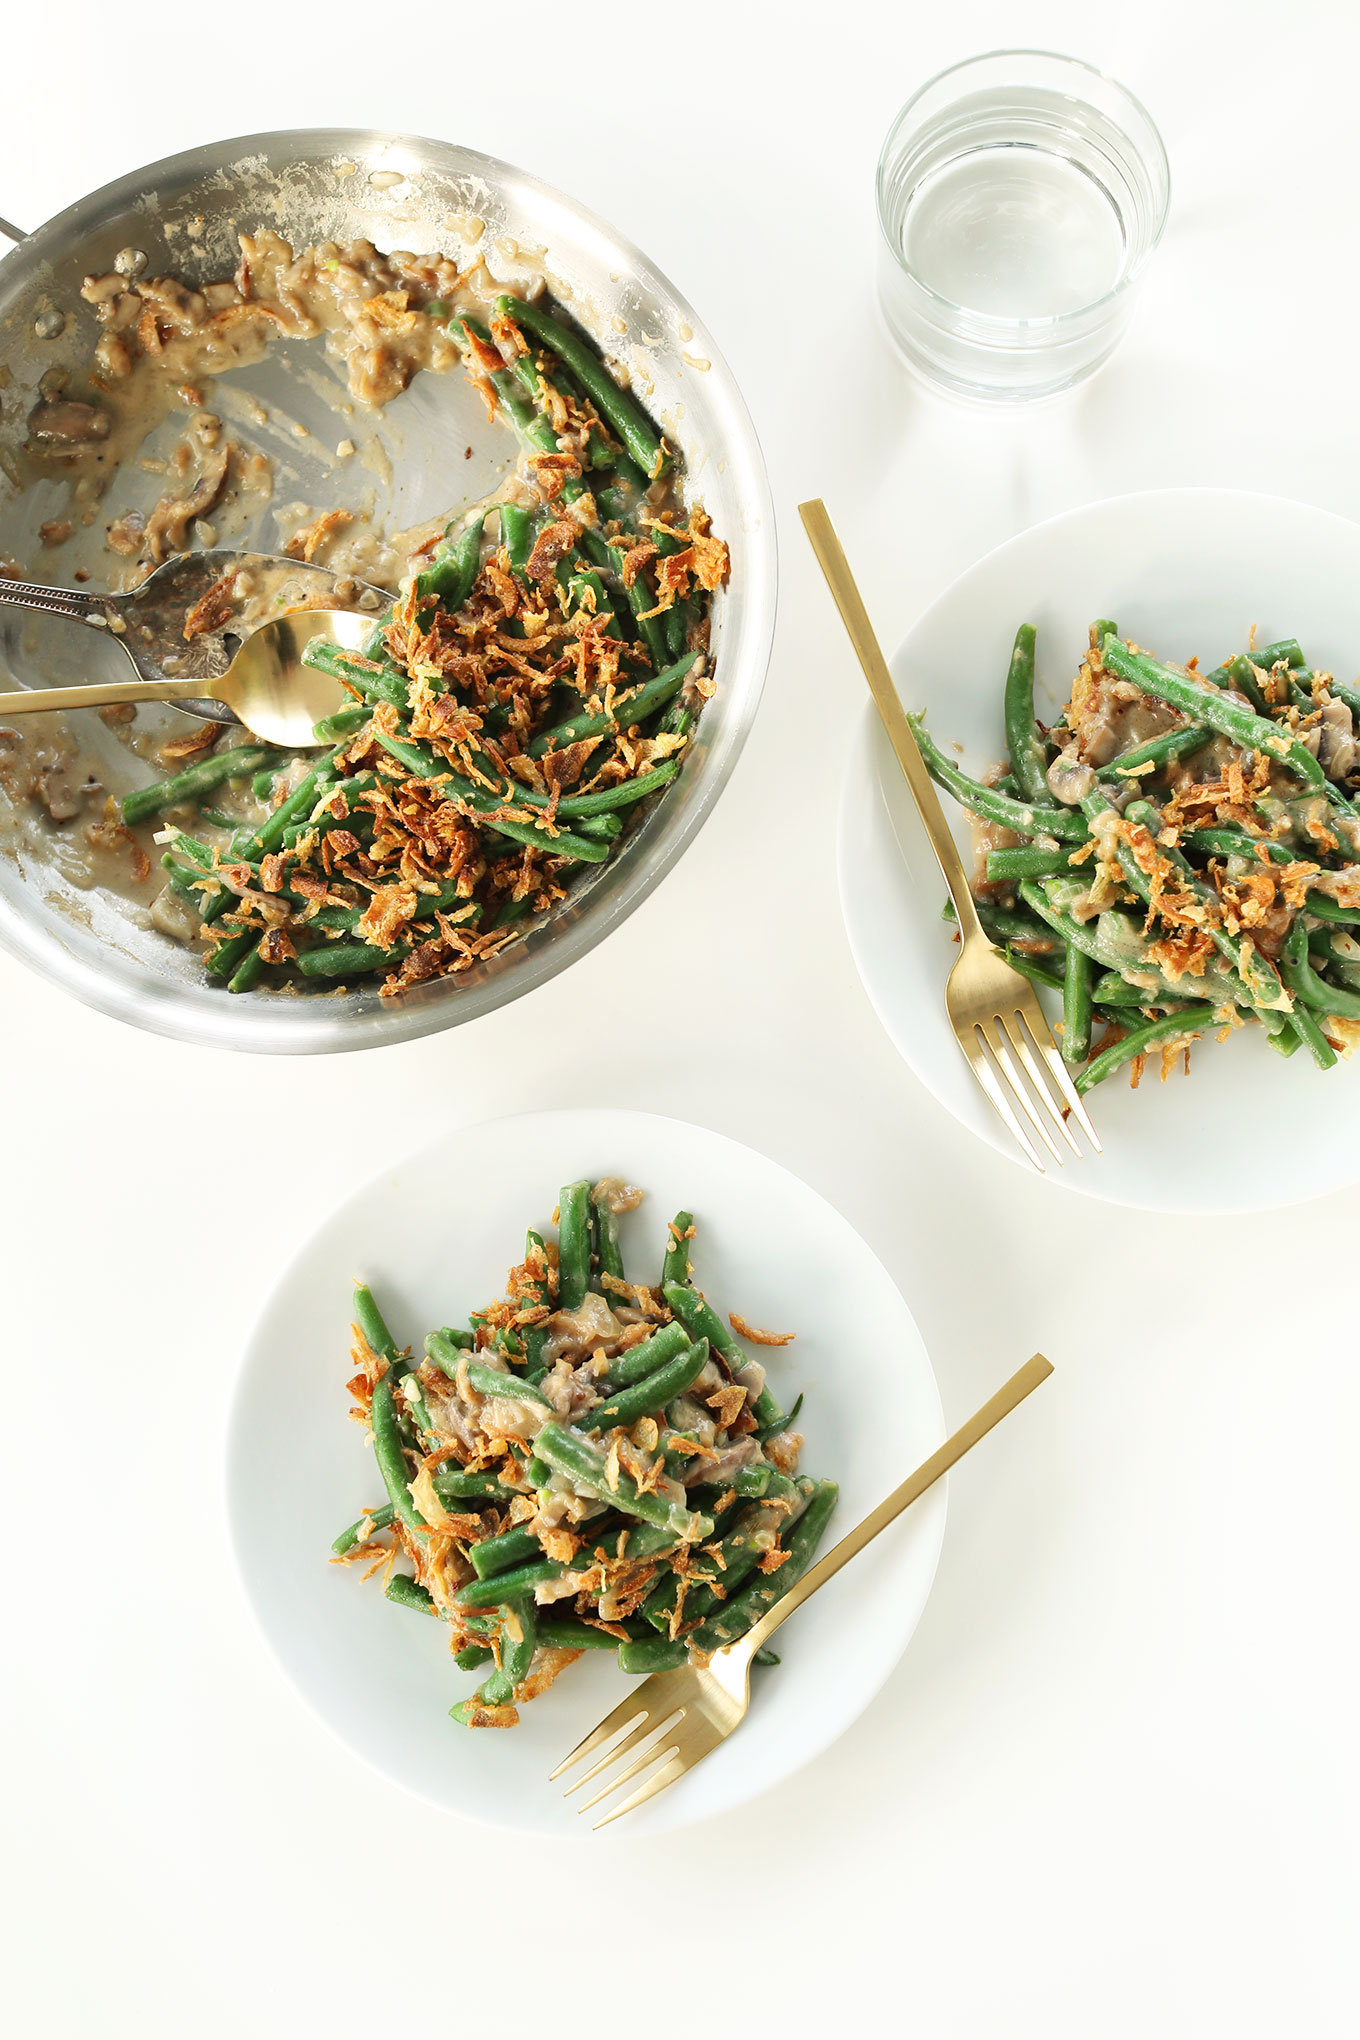 Using a spoon to scoop Vegan Green Bean Casserole onto serving plates